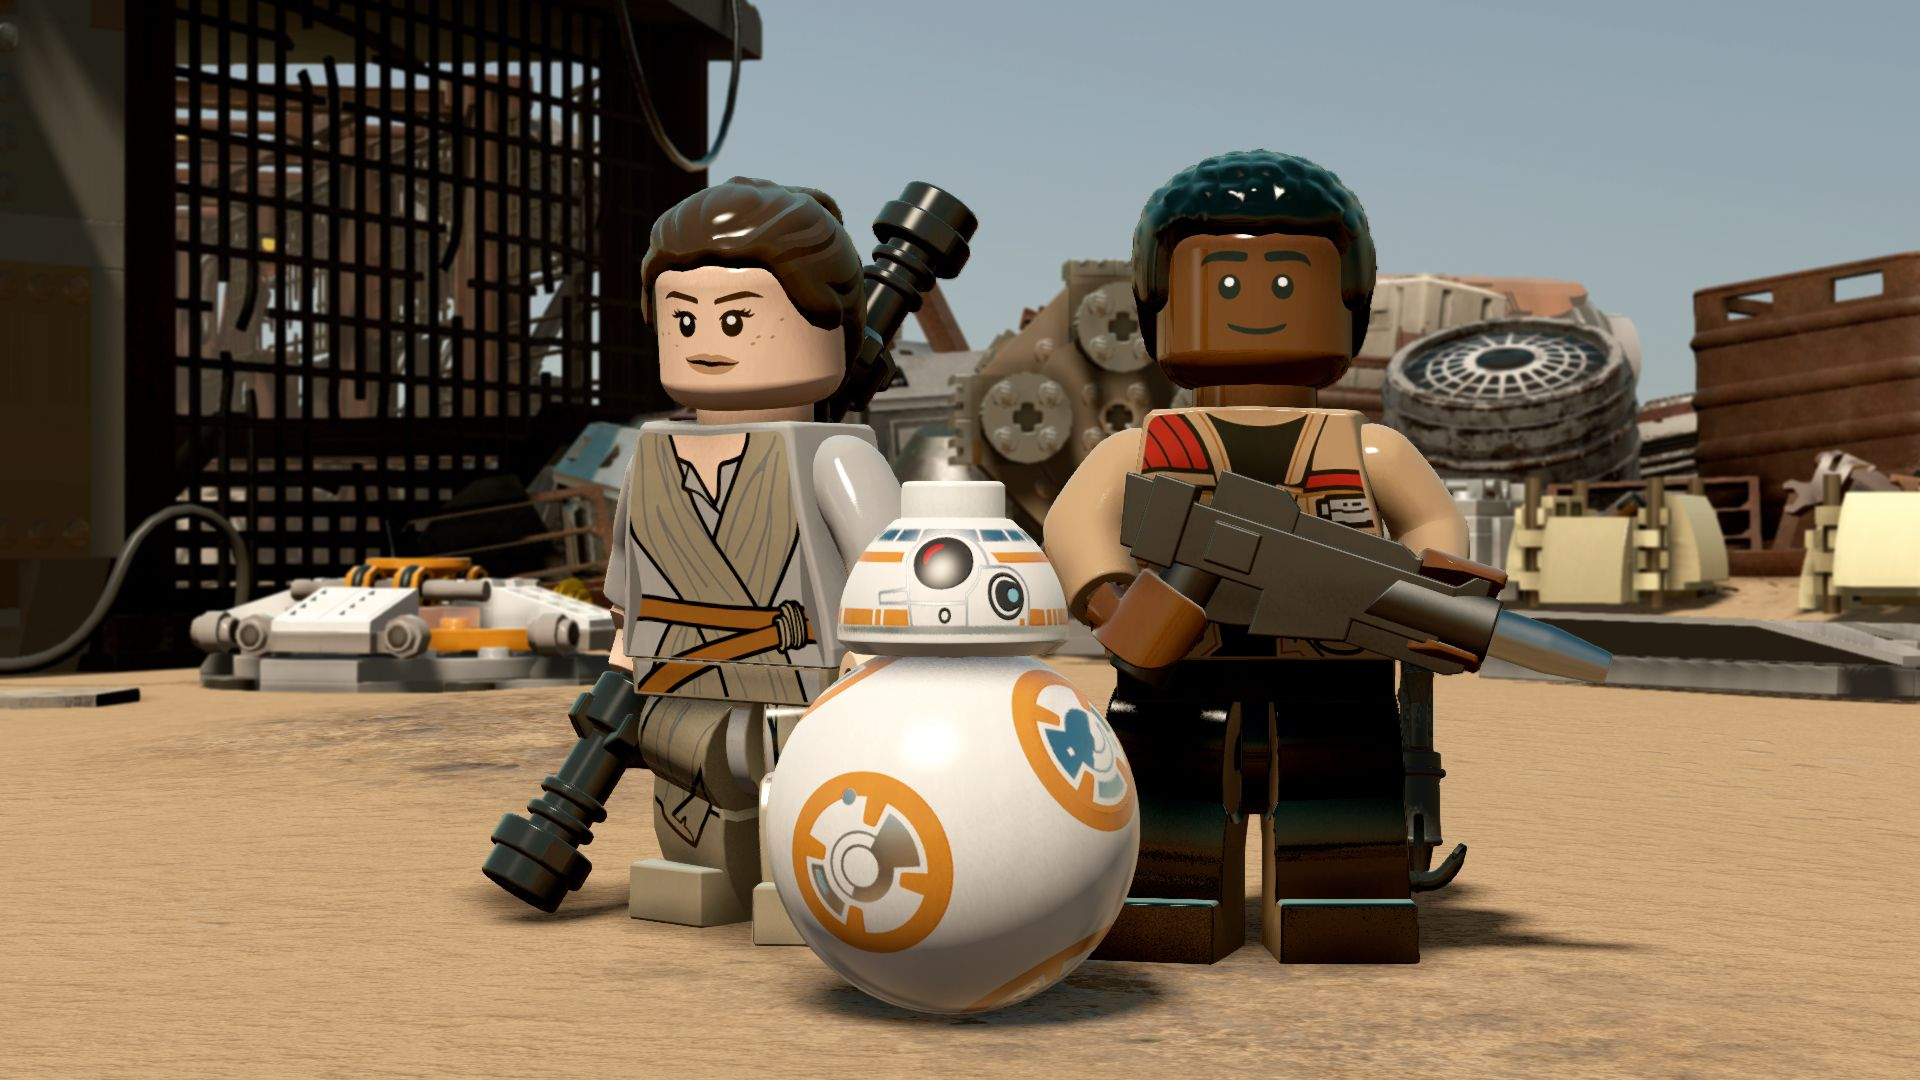 lego-star-wars-the-force-awakens_1107181